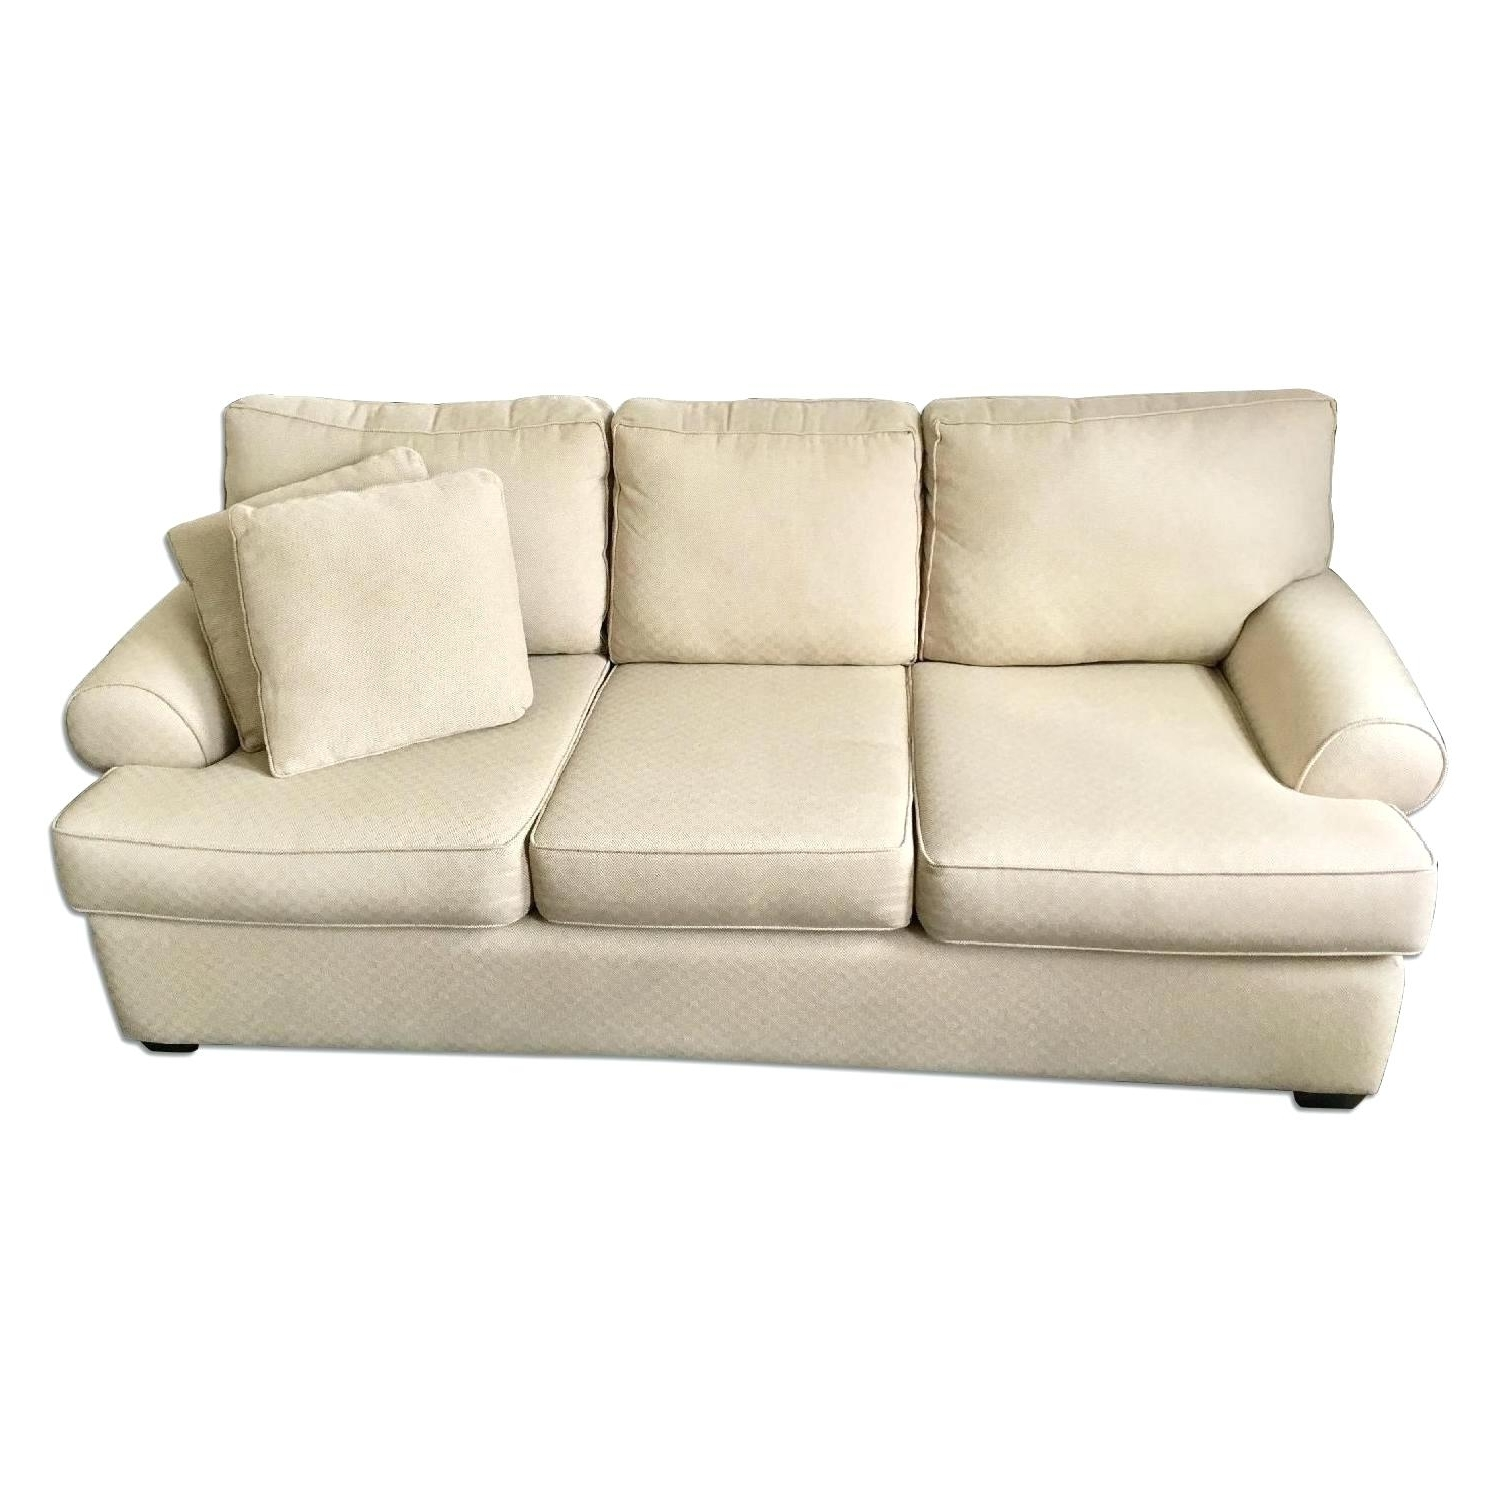 Favorite Sleep Sofas Sleeper Ikea Small Sofa Sectionals For Sale Cheap Intended For Ikea Small Sofas (View 4 of 20)